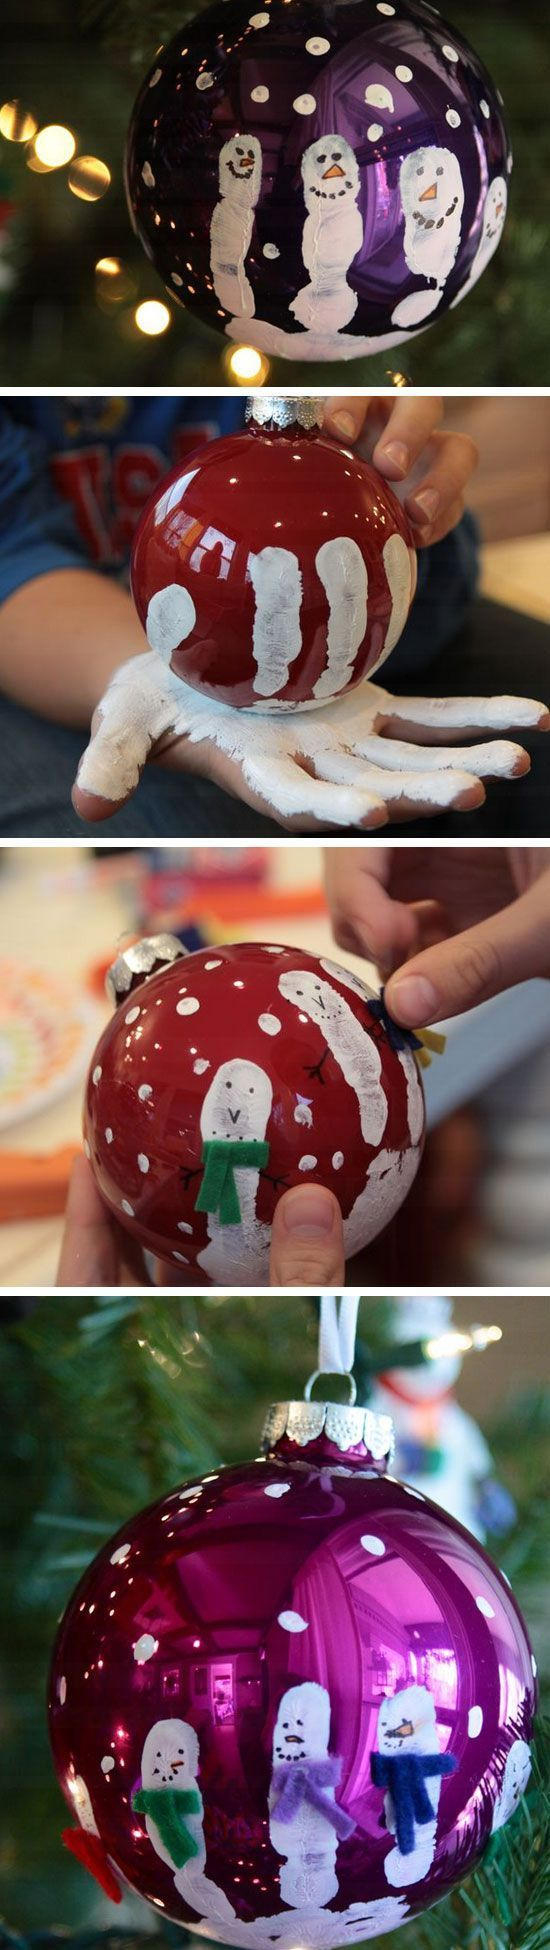 Christmas decorations ideas to make at home - Diy Christmas Craft Ideas For Kids Easy Handprint Ornament For Kids To Make